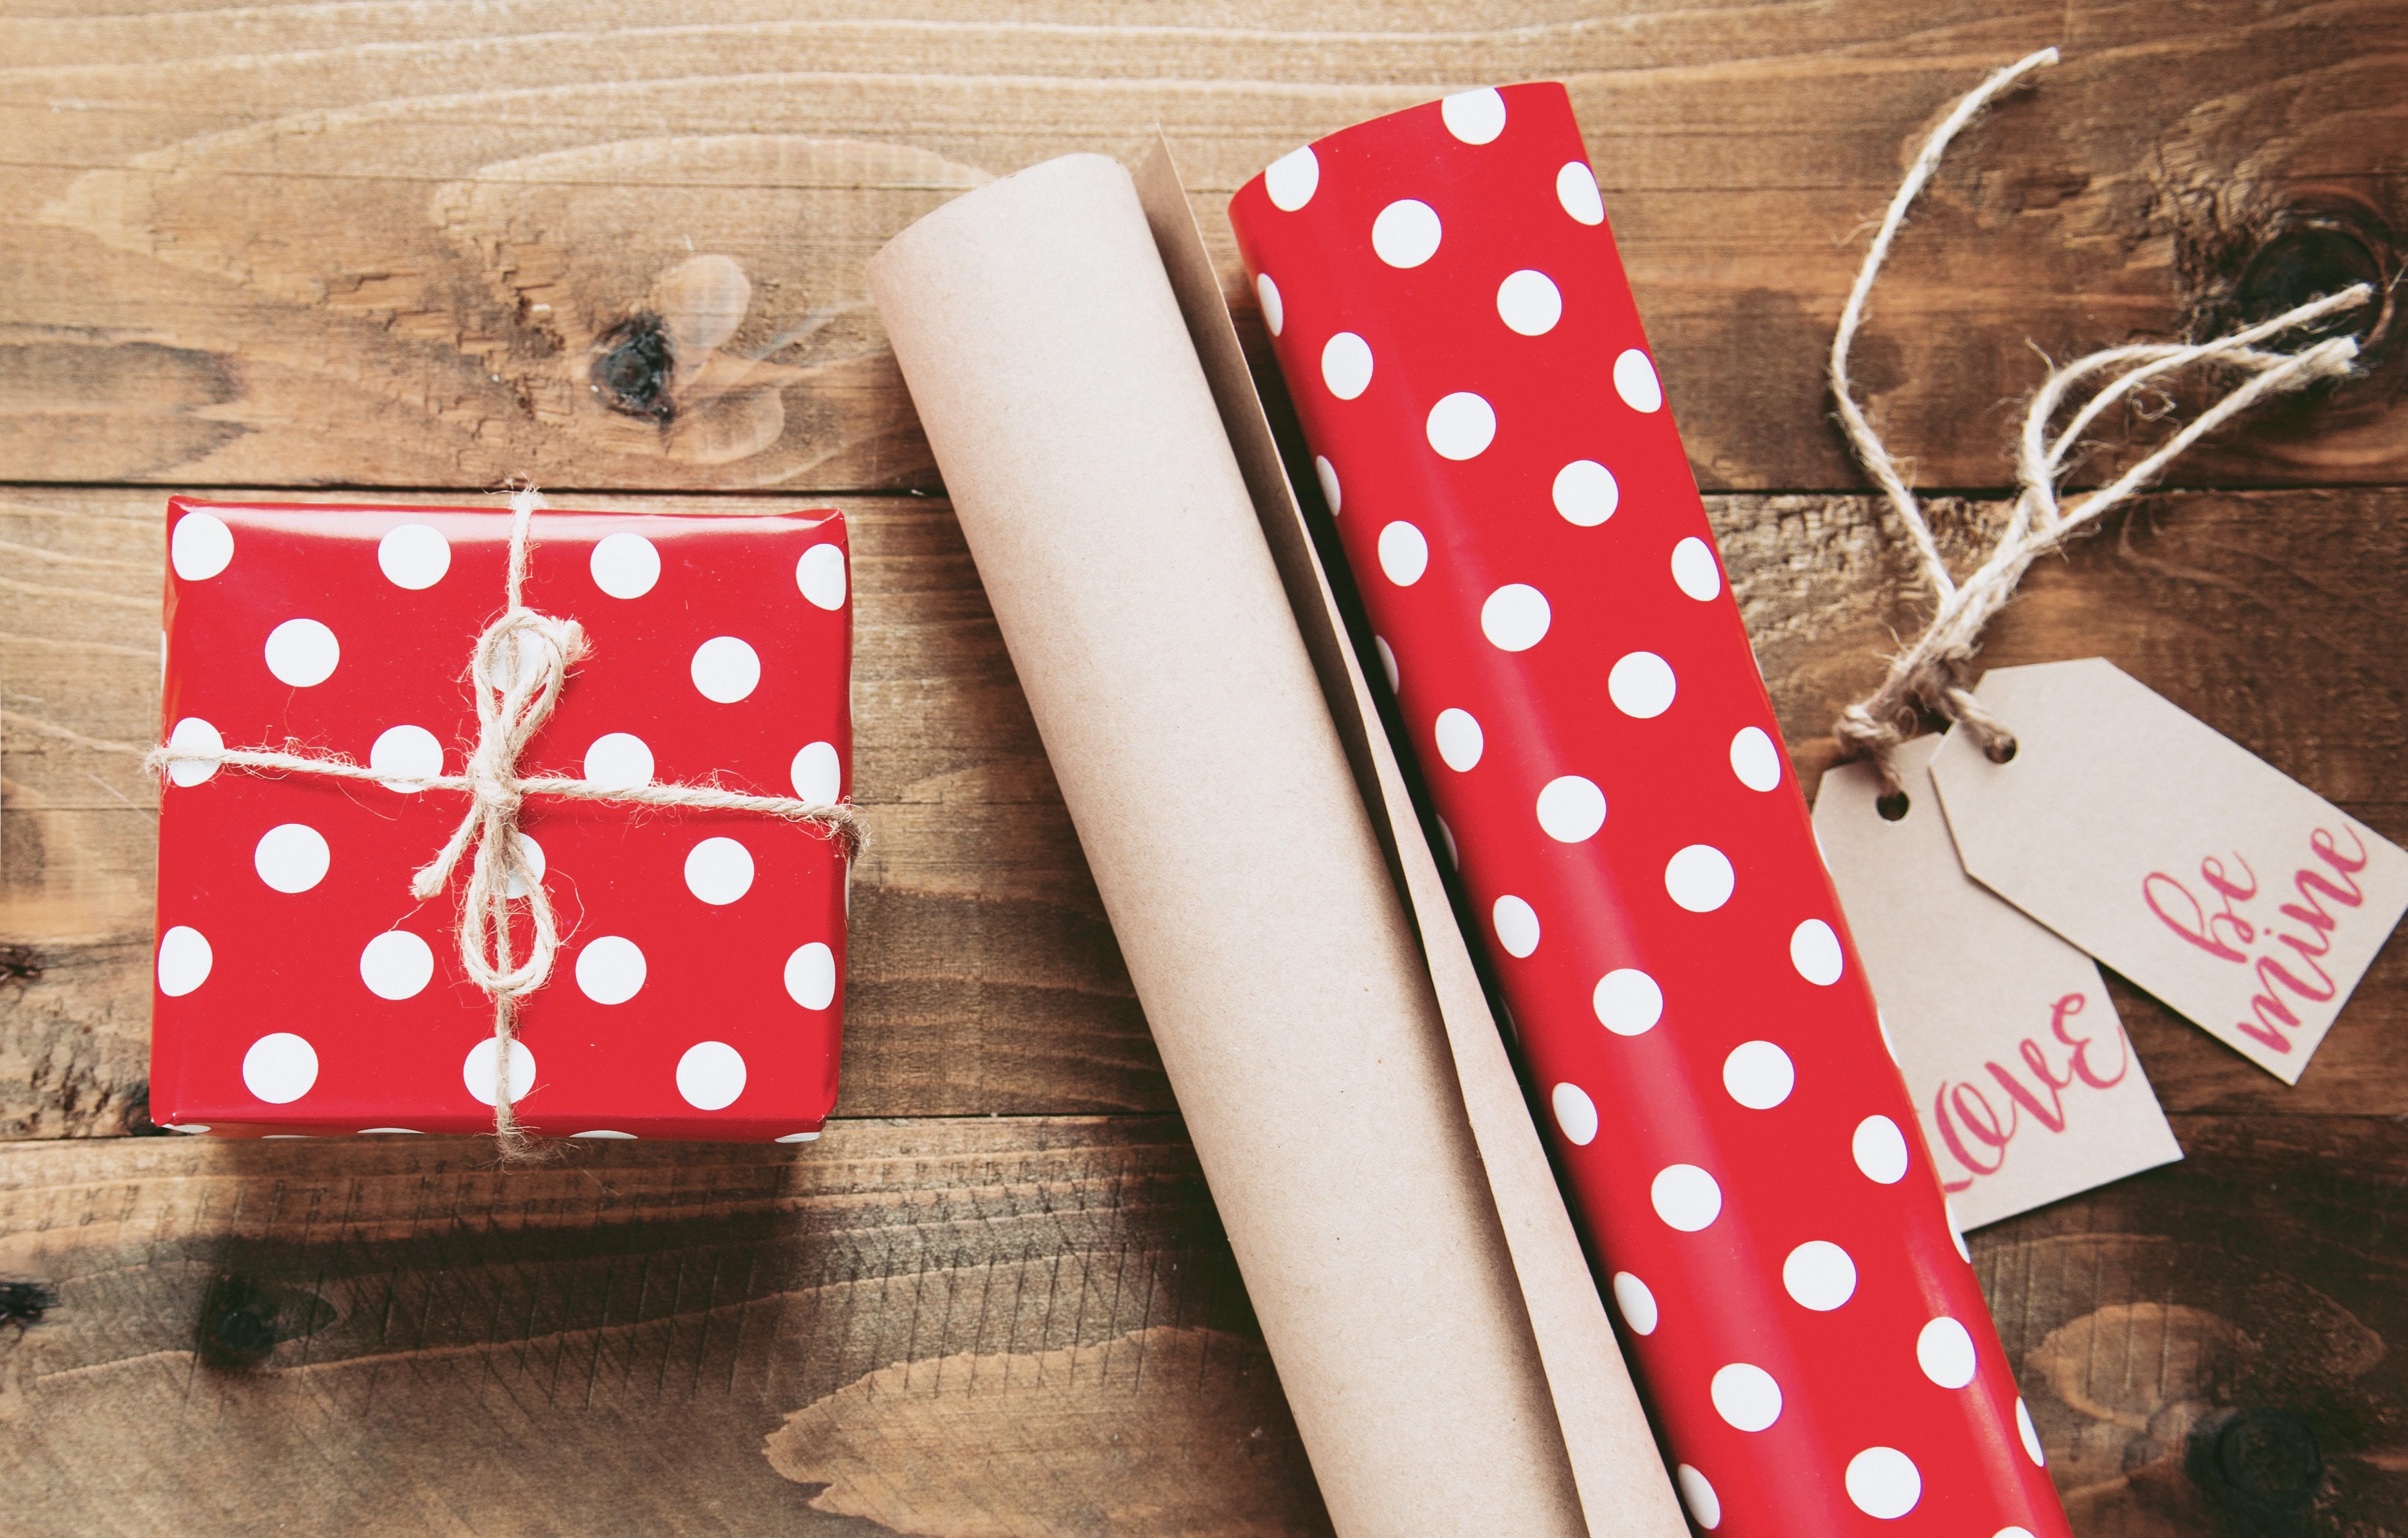 """Box wrapped in red paper with white dots sitting next to wrapping paper and gift tags saying """"Love"""" and """"Be mine."""" Image by Miroslava, via Unsplash.com."""